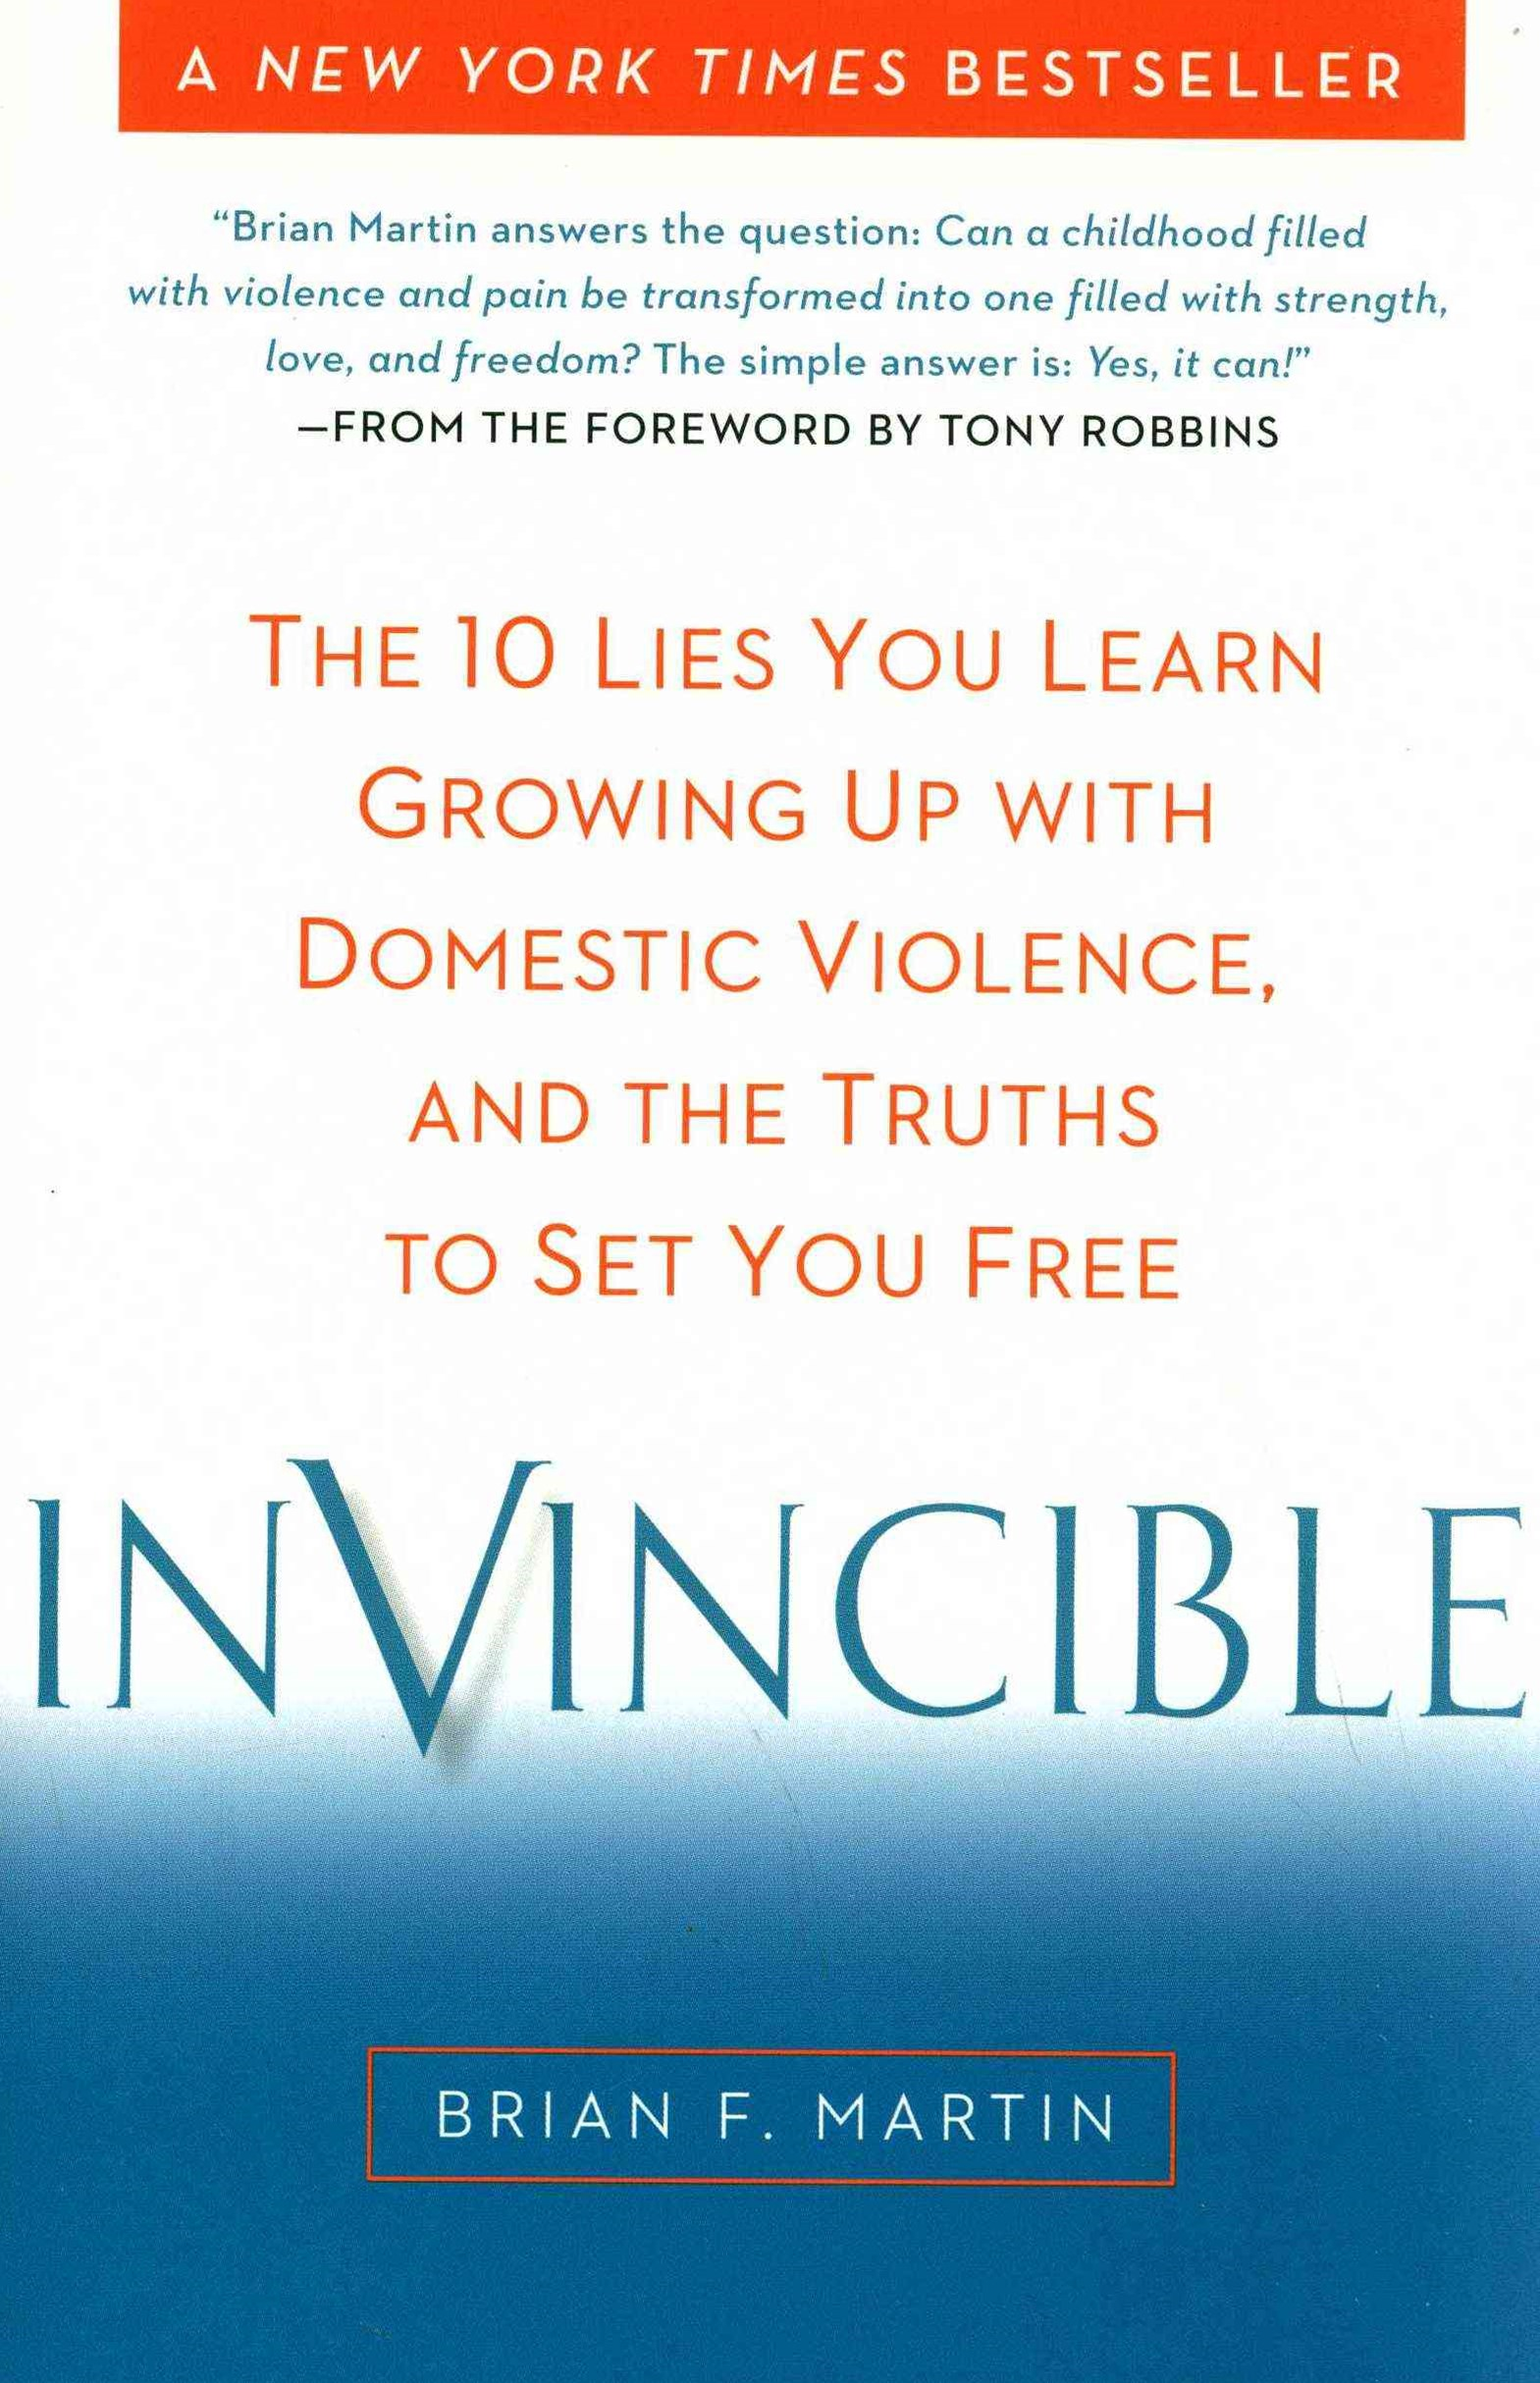 Invincible : The 10 Lies You Learn Growing Up With DomesticViolence, And The Truths To Set You Free